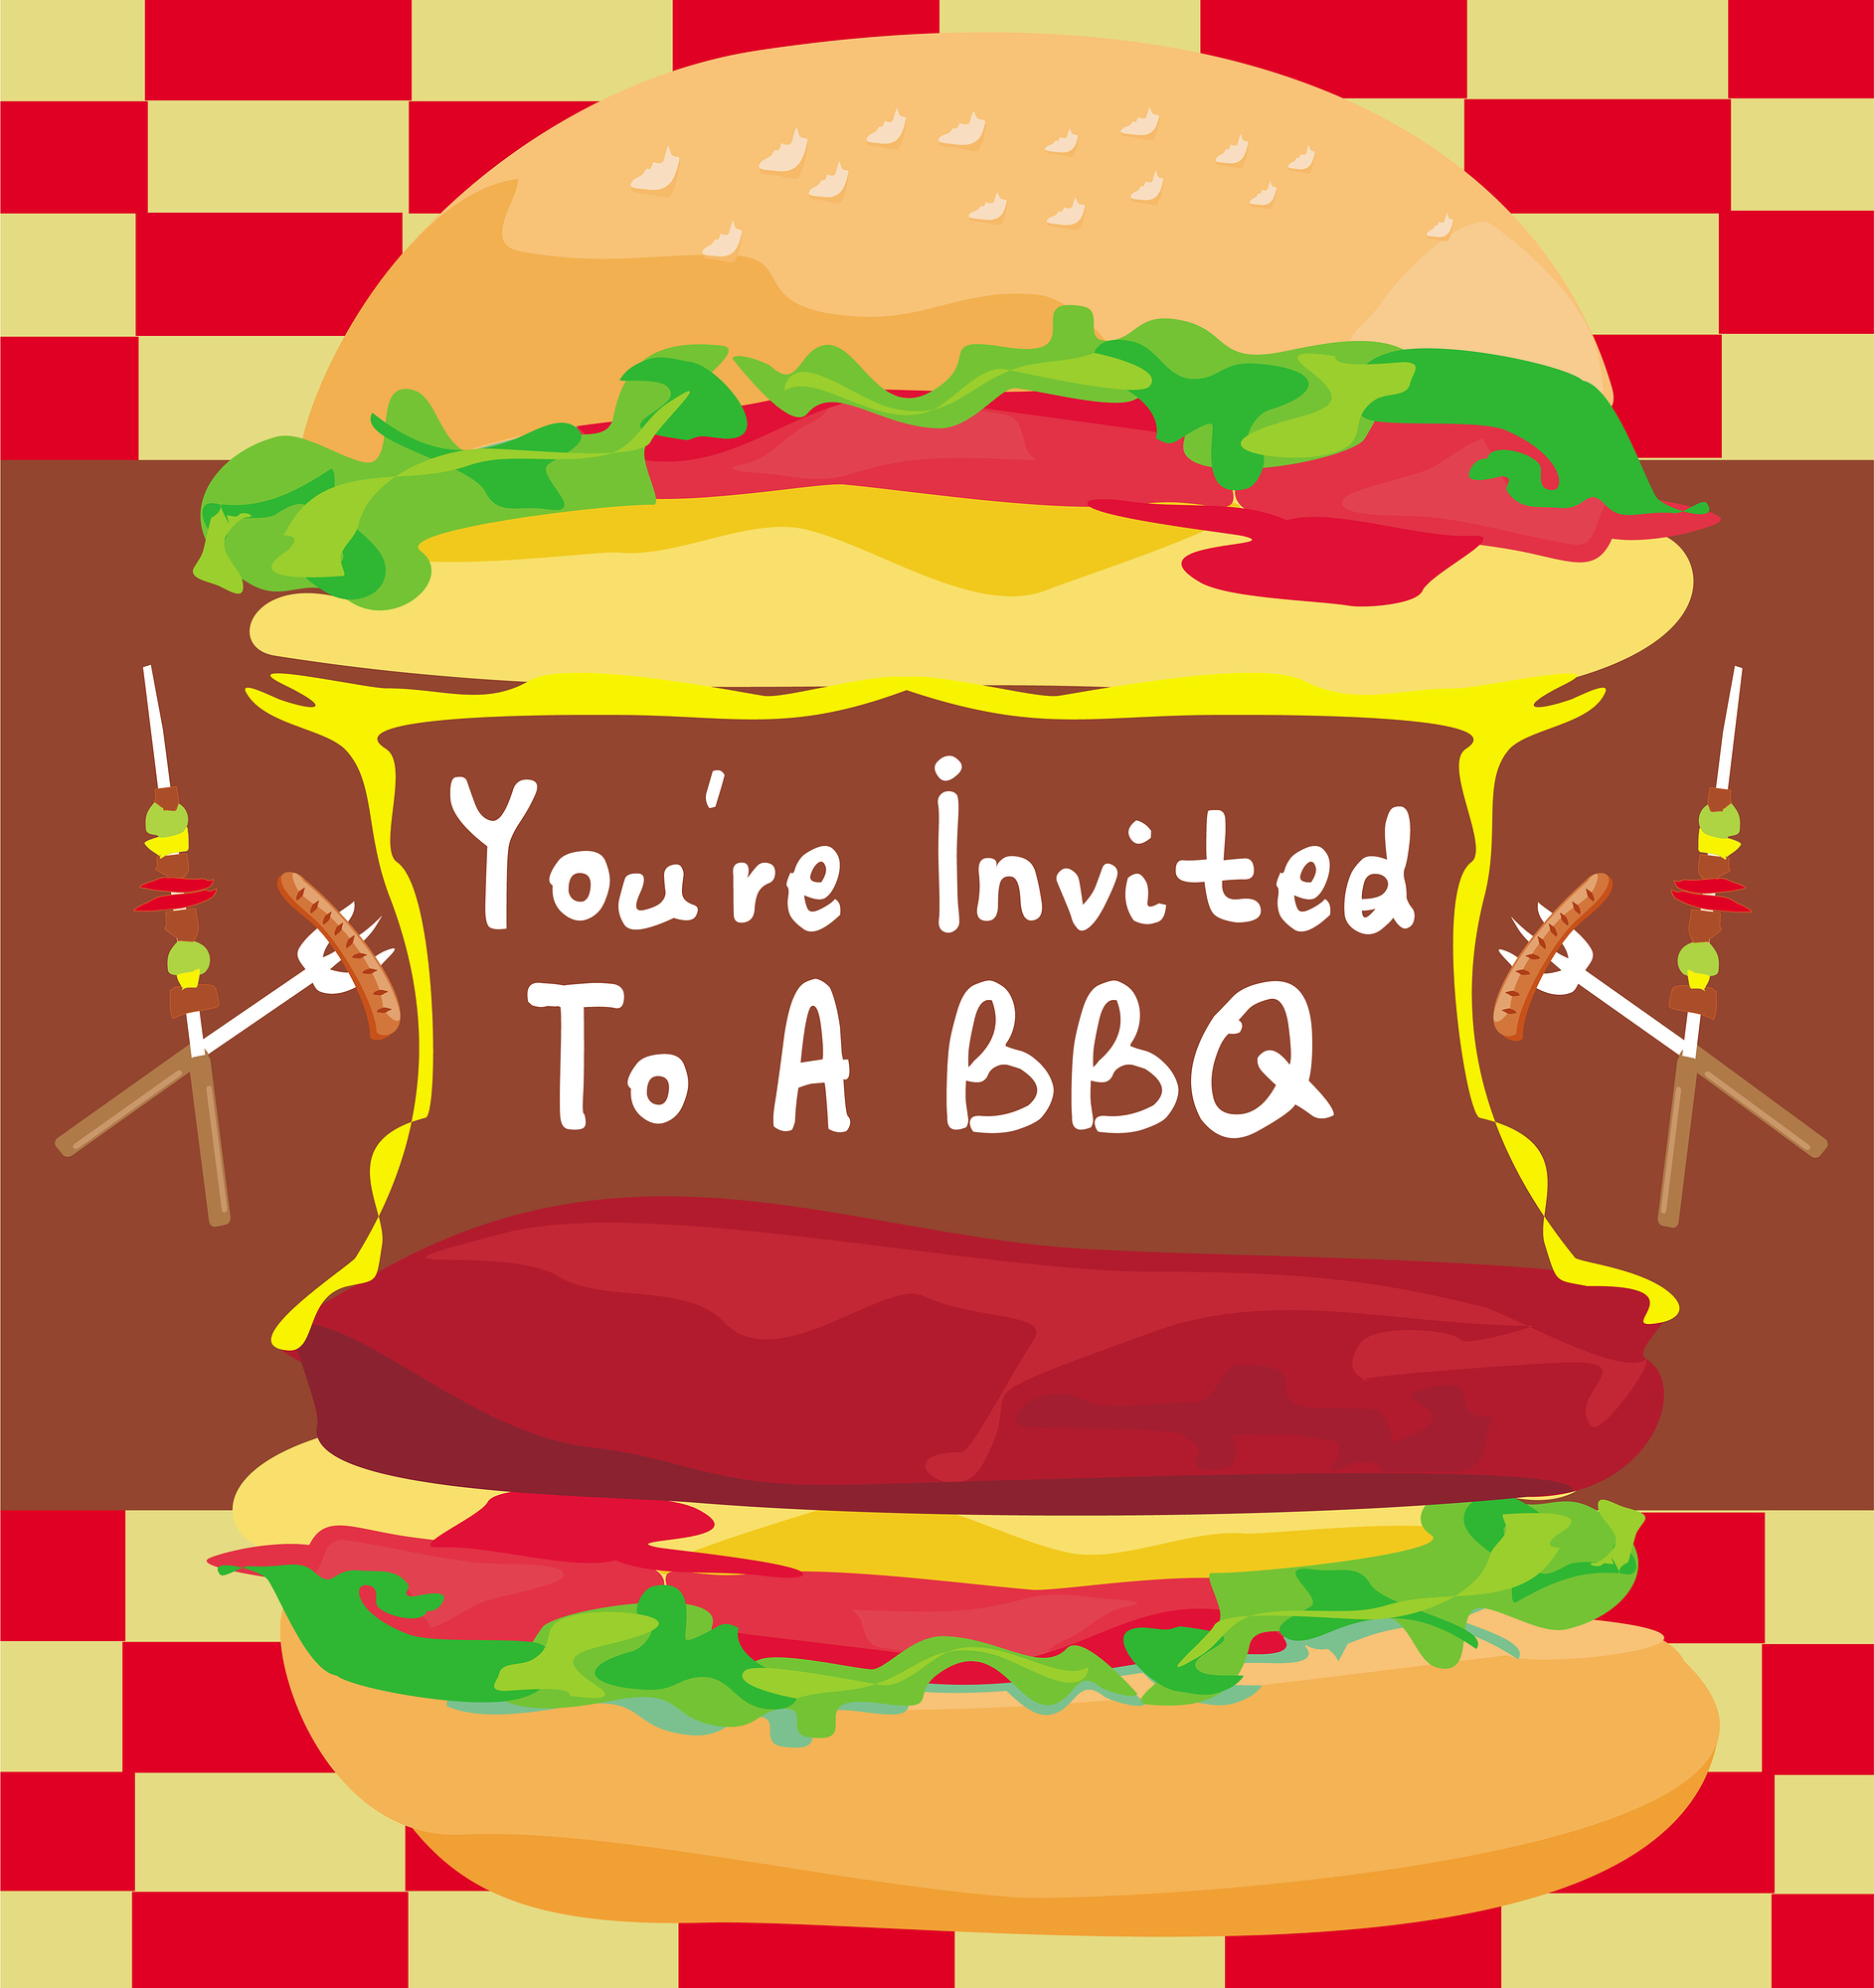 Bbq-Party-Big-Burger-Invitation.jpg